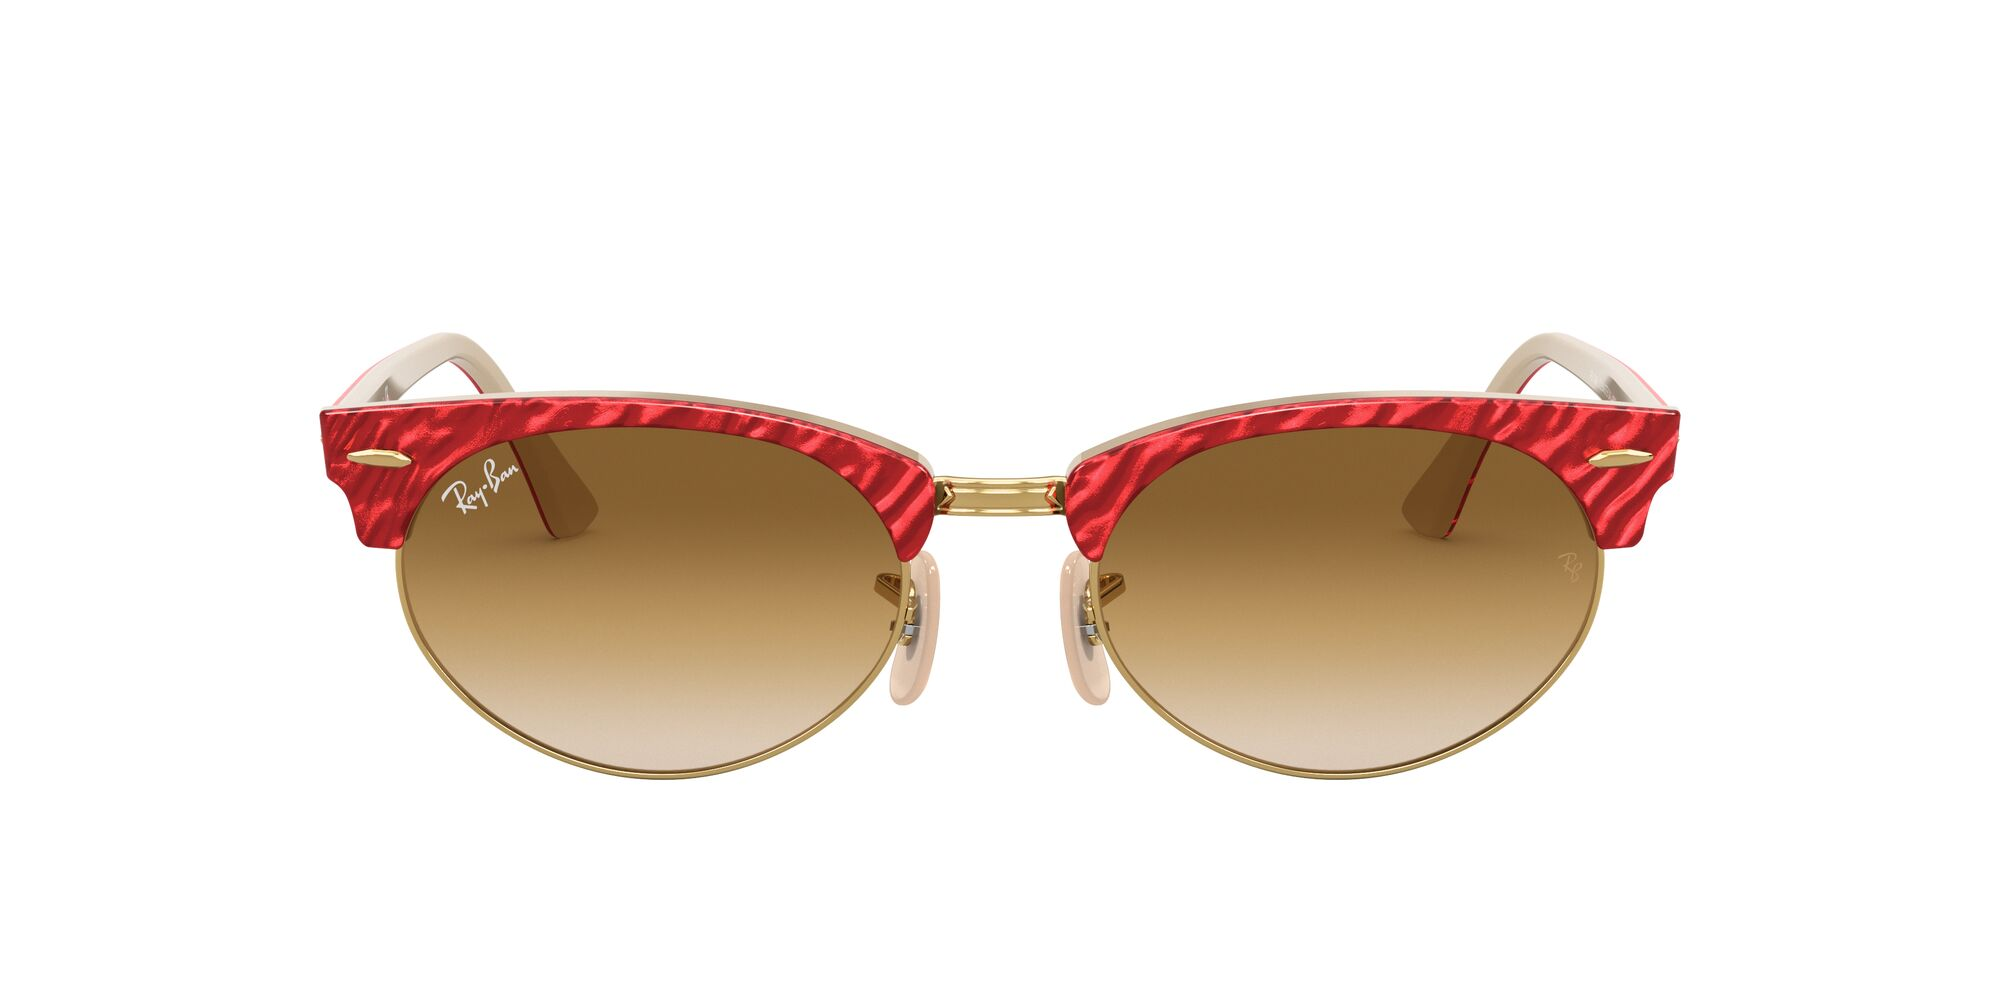 Front Ray-Ban Ray-Ban 0RB3946 130851 51/19 Rood, Beige/Bruin